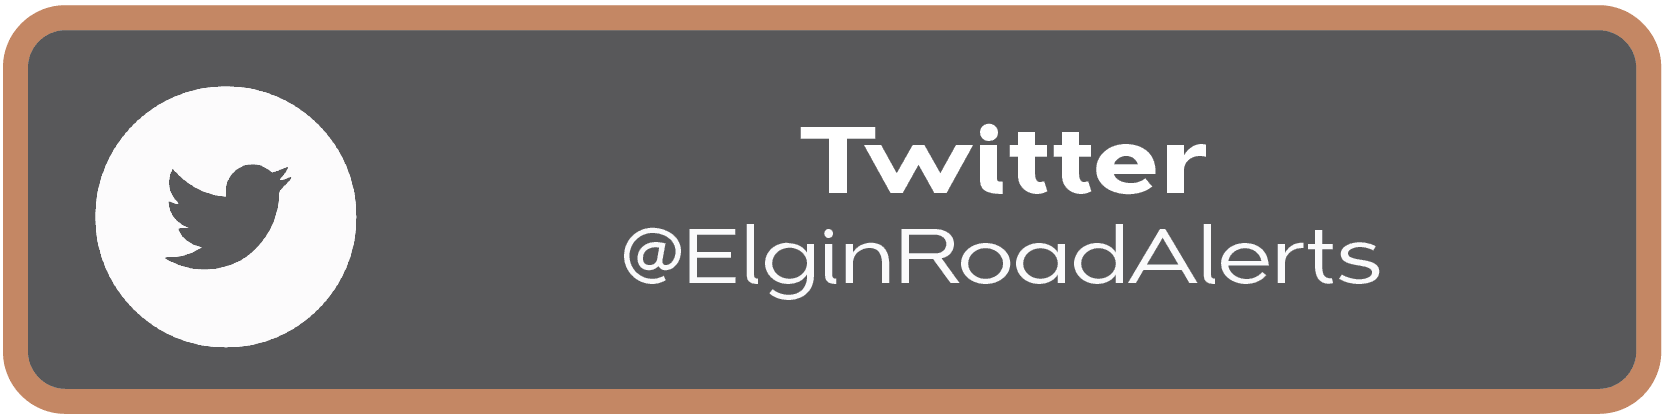 Button to click to view construction updates on Elgin Road Alerts twitter handle